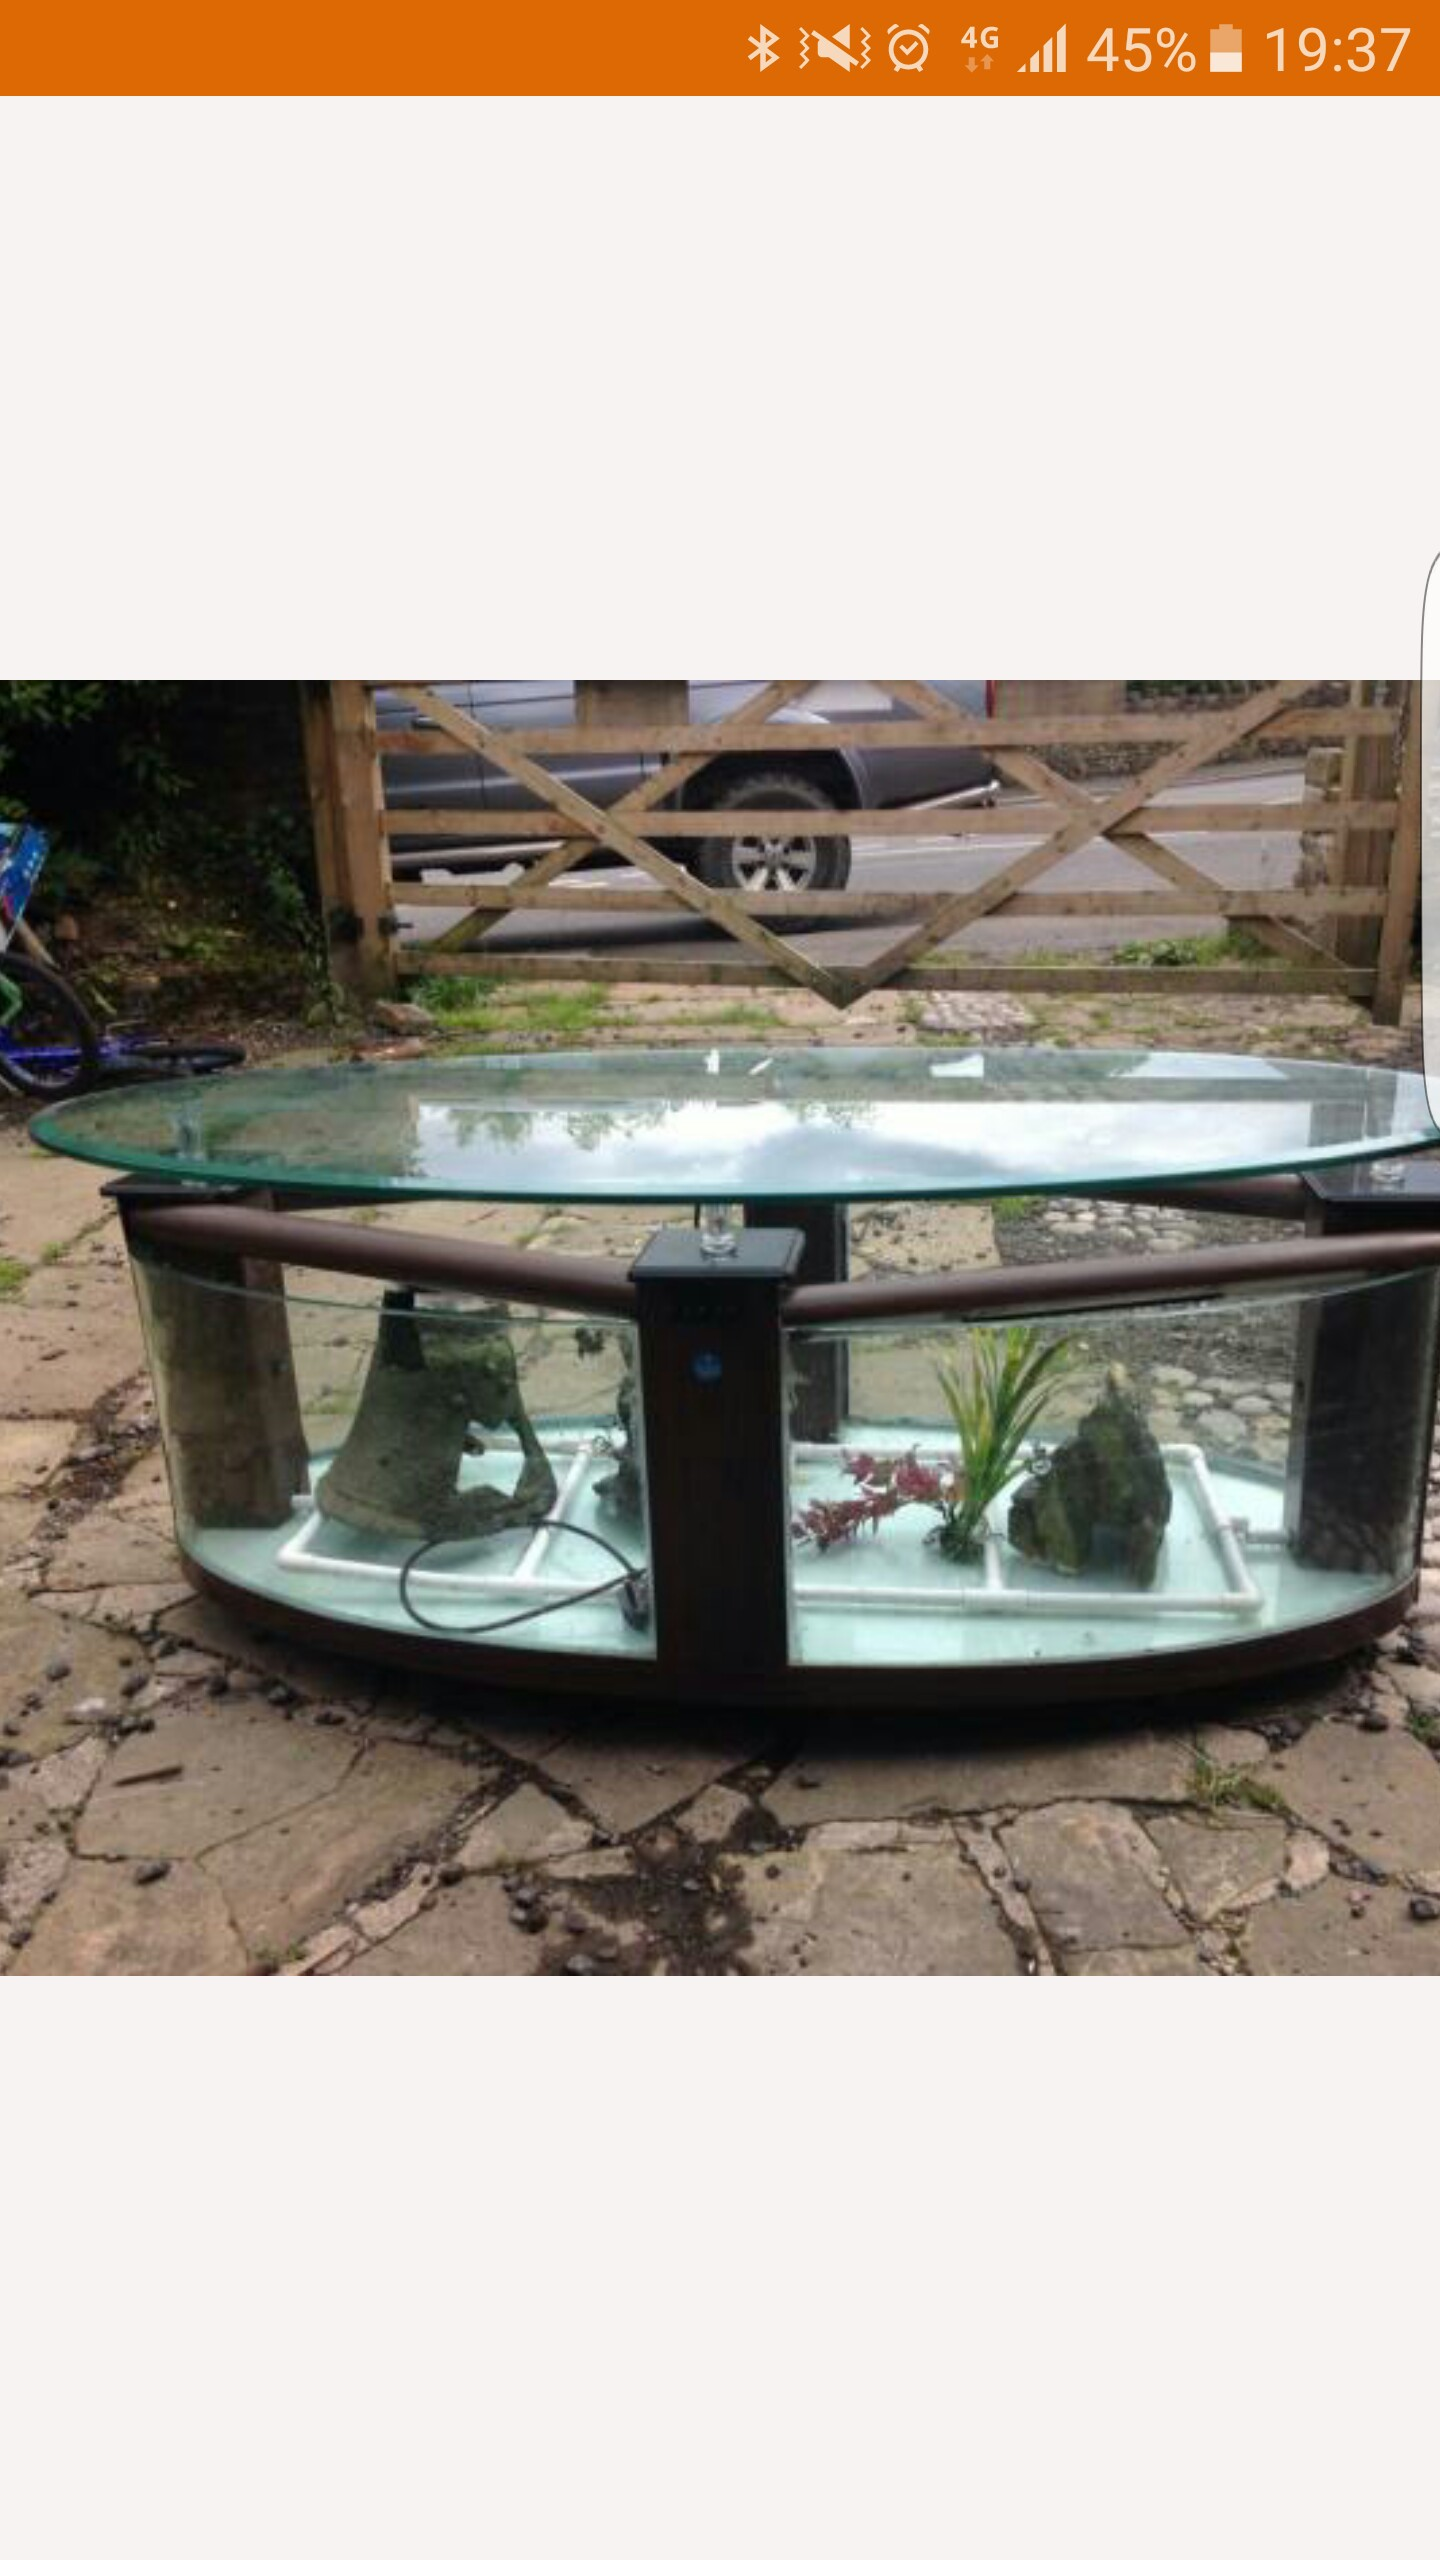 Table fish tank for sale in uk 79 used table fish tanks for Coffee table fish tank for sale